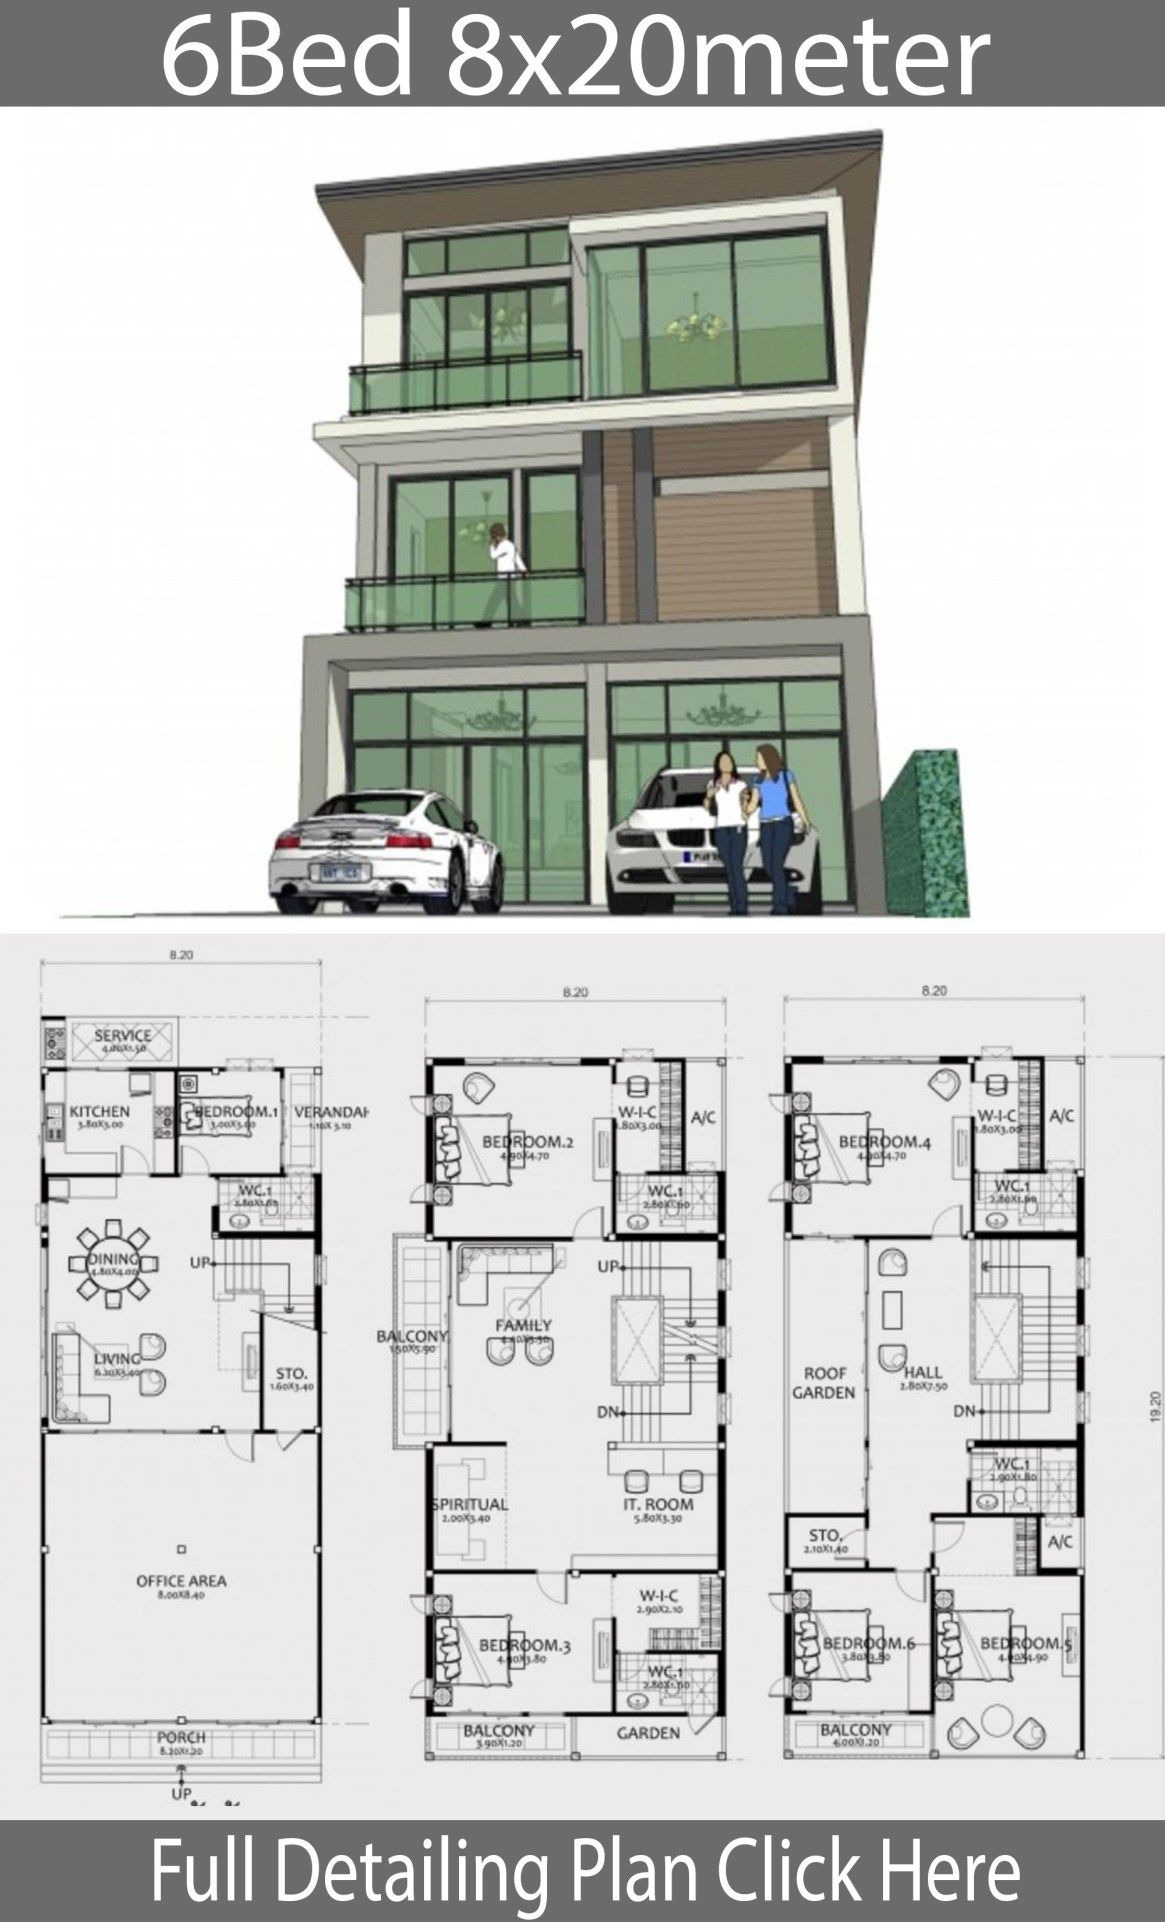 Residential House Design Plans Elegant Home Design Plan 8x20m with 6 Bedrooms